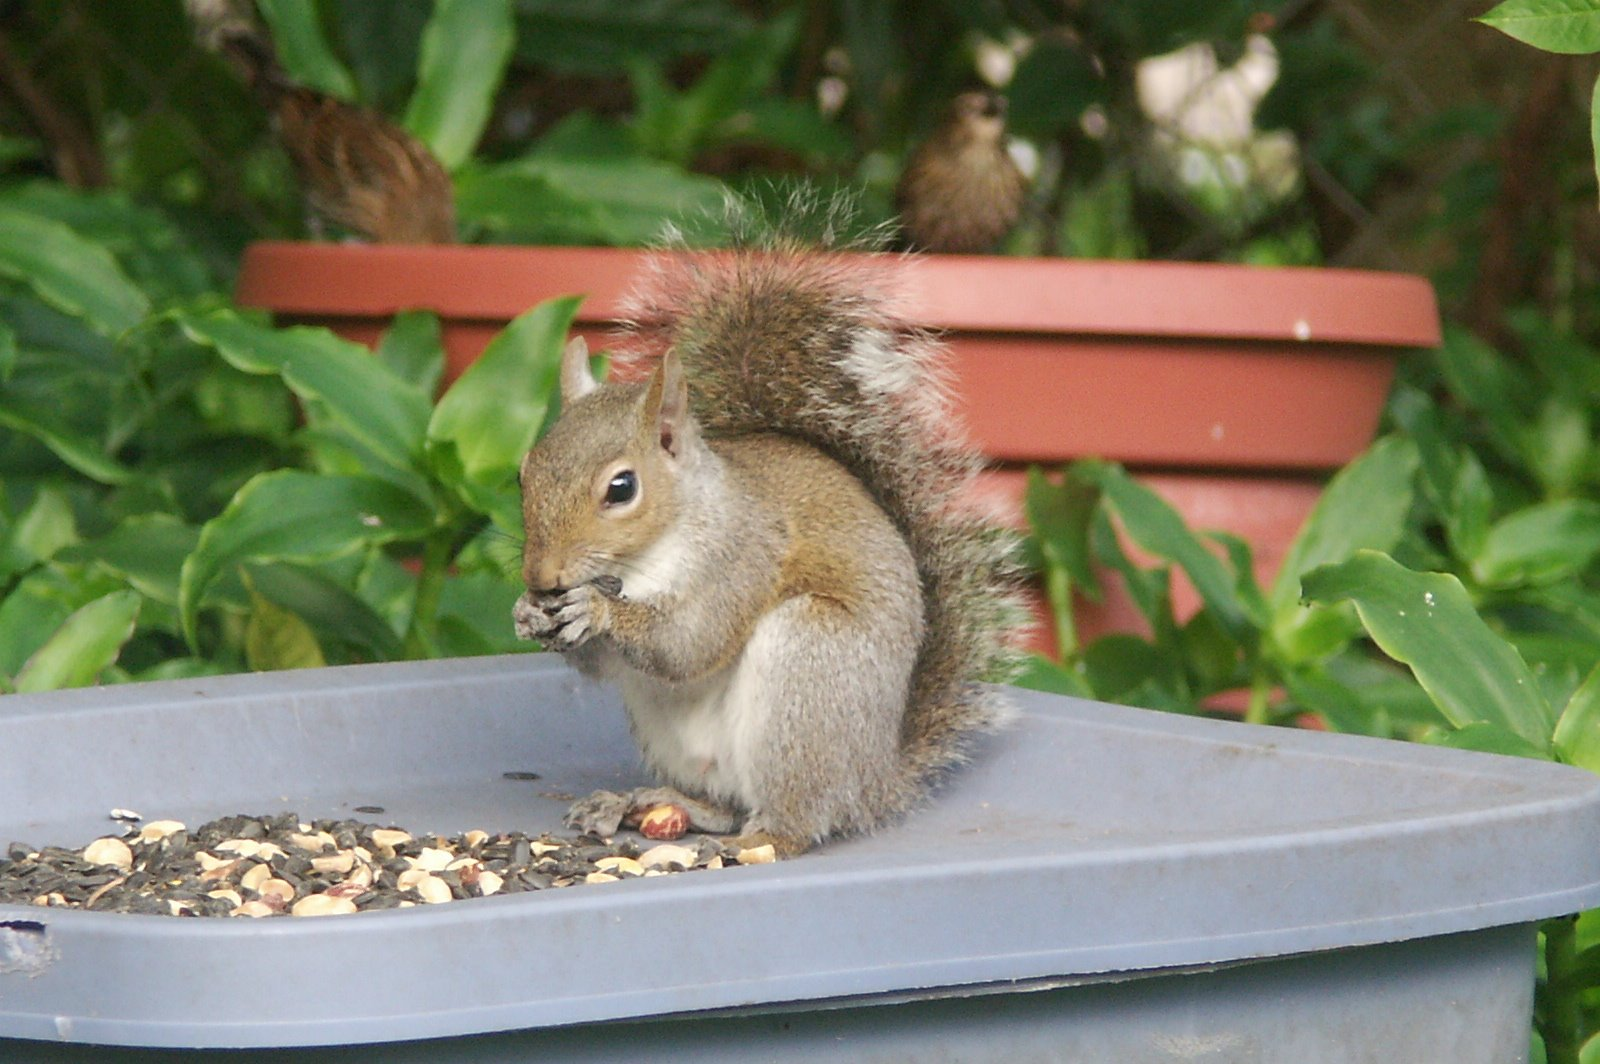 [squirrel_breakfast]